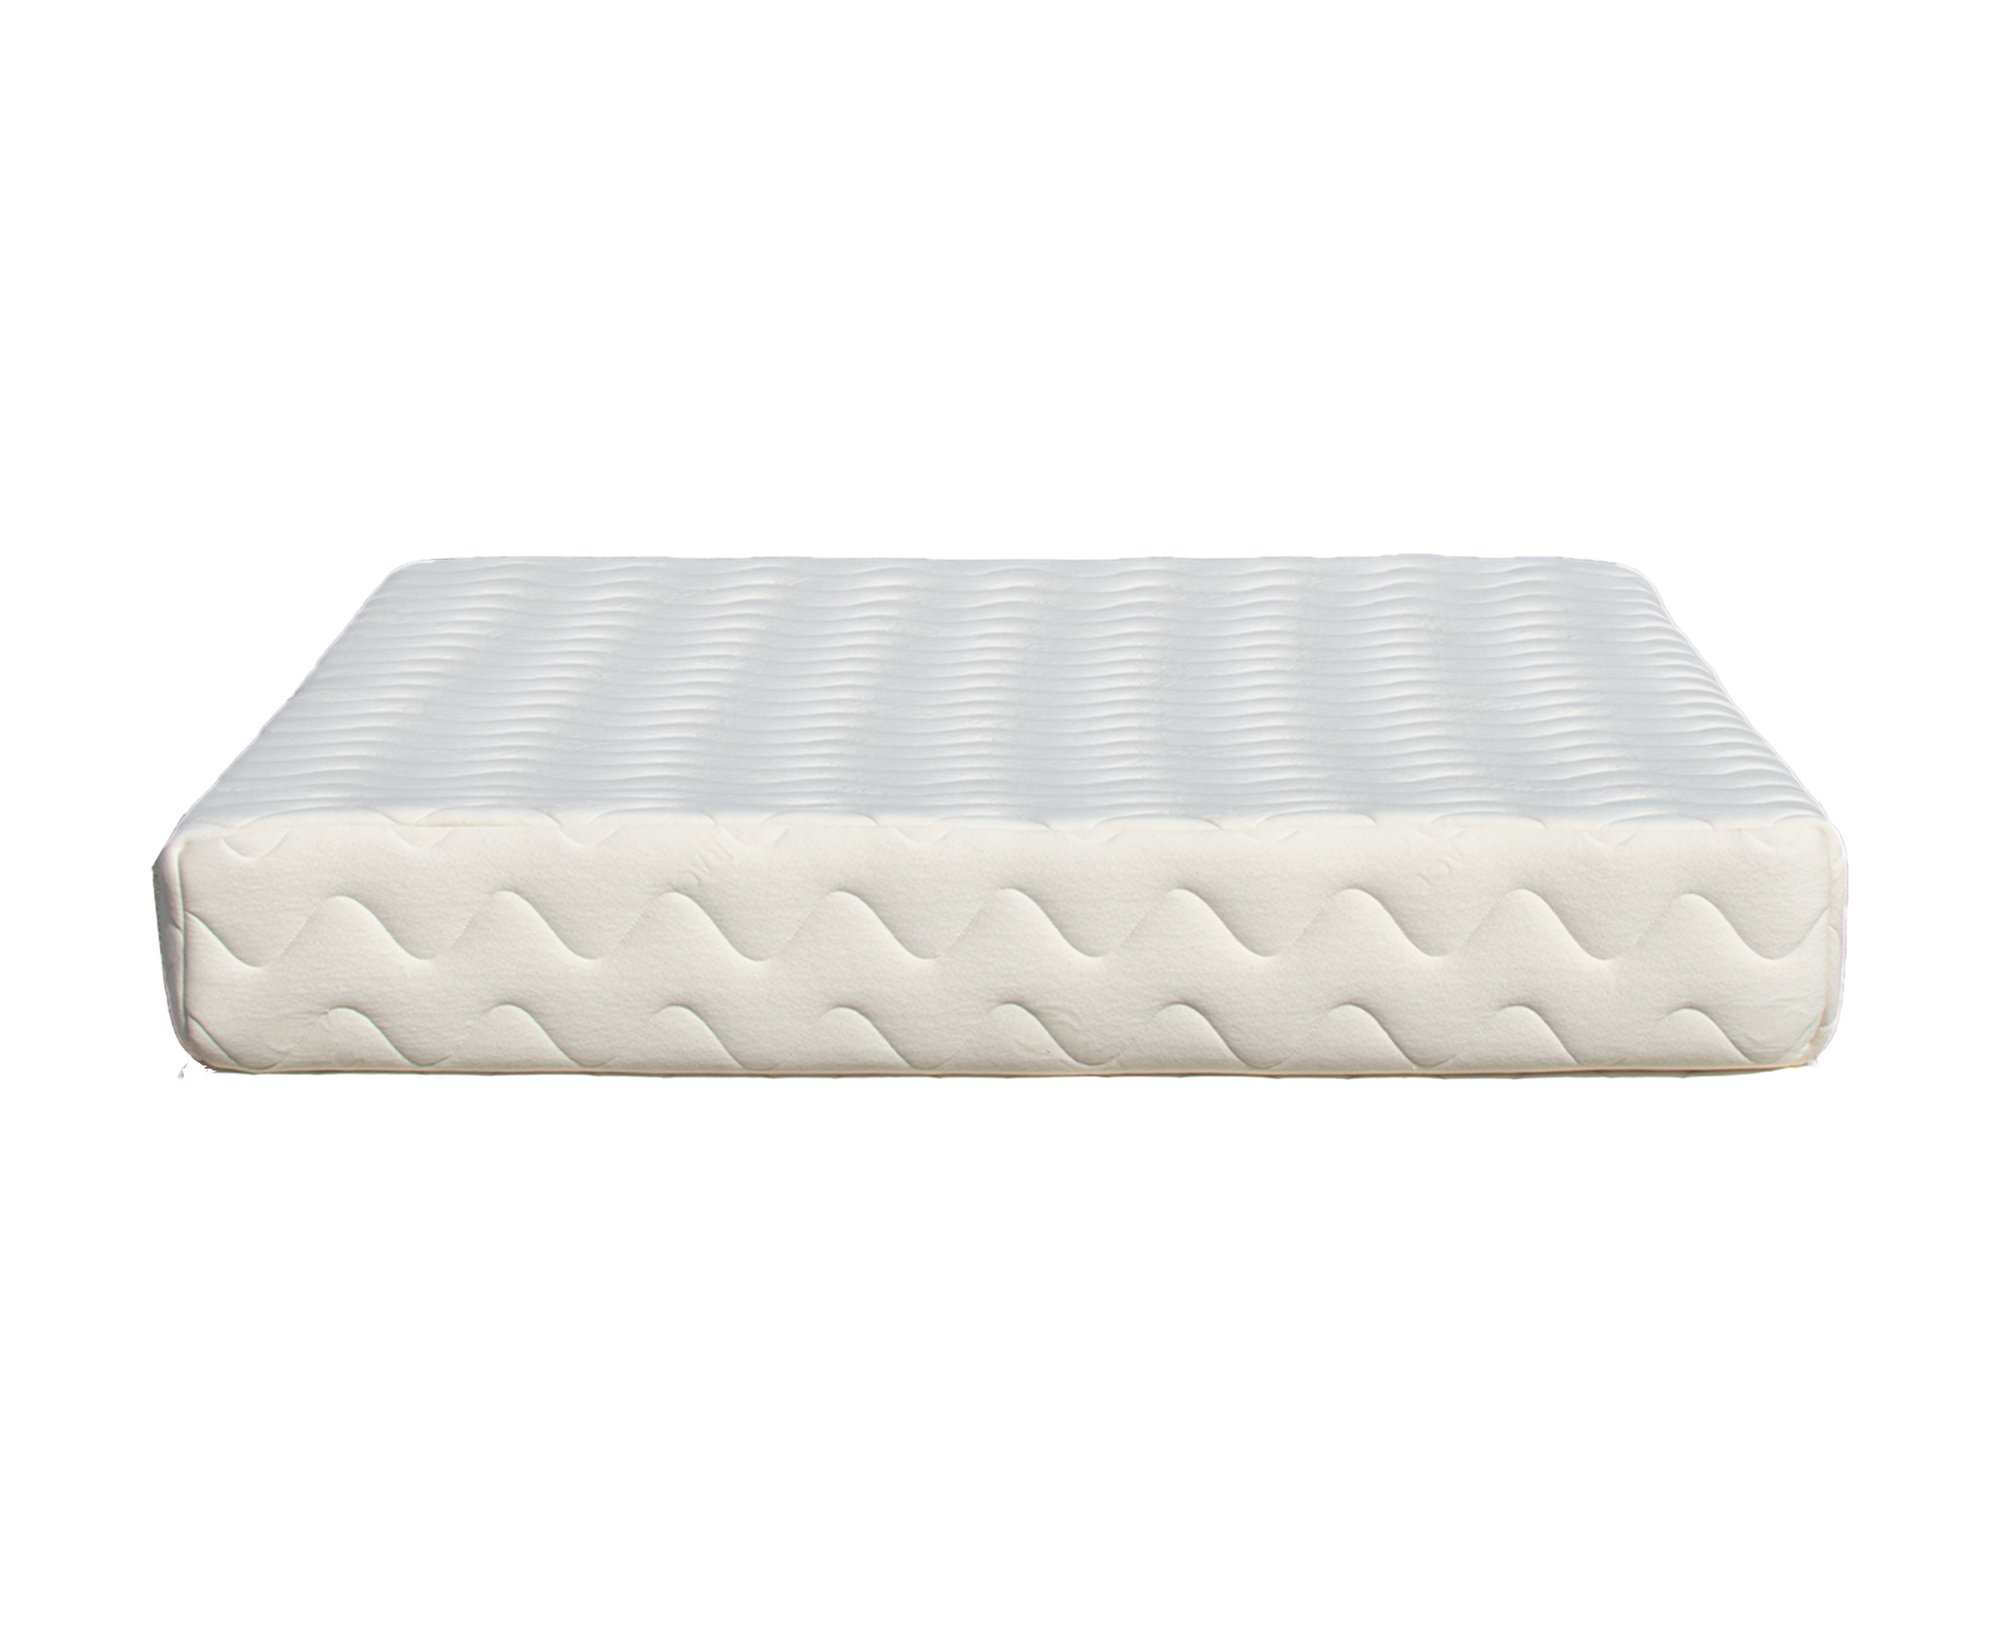 Mattress In Canada Natural Foam Rubber Mattress Made And Shipped Within Canada